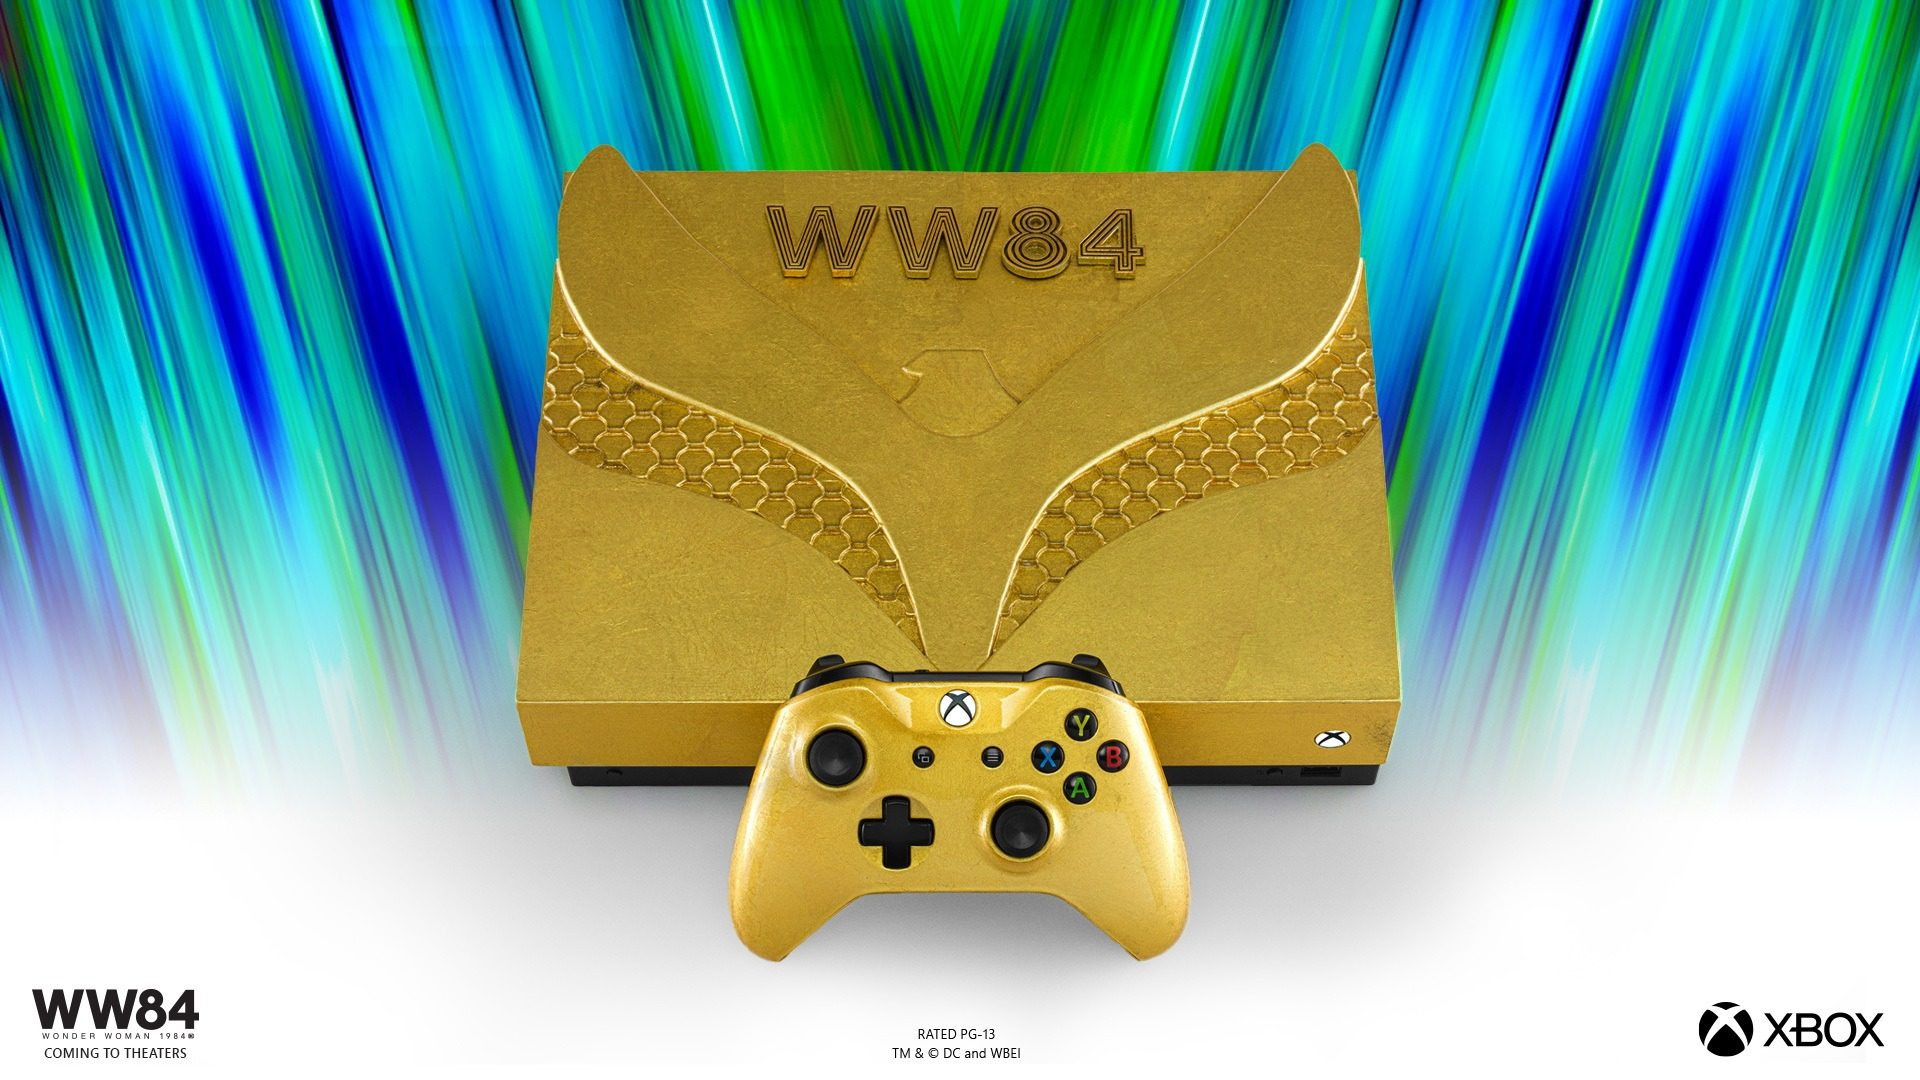 xbox-ww1984-golden-eagle-armor-xbox-one-x-console-2-1005788